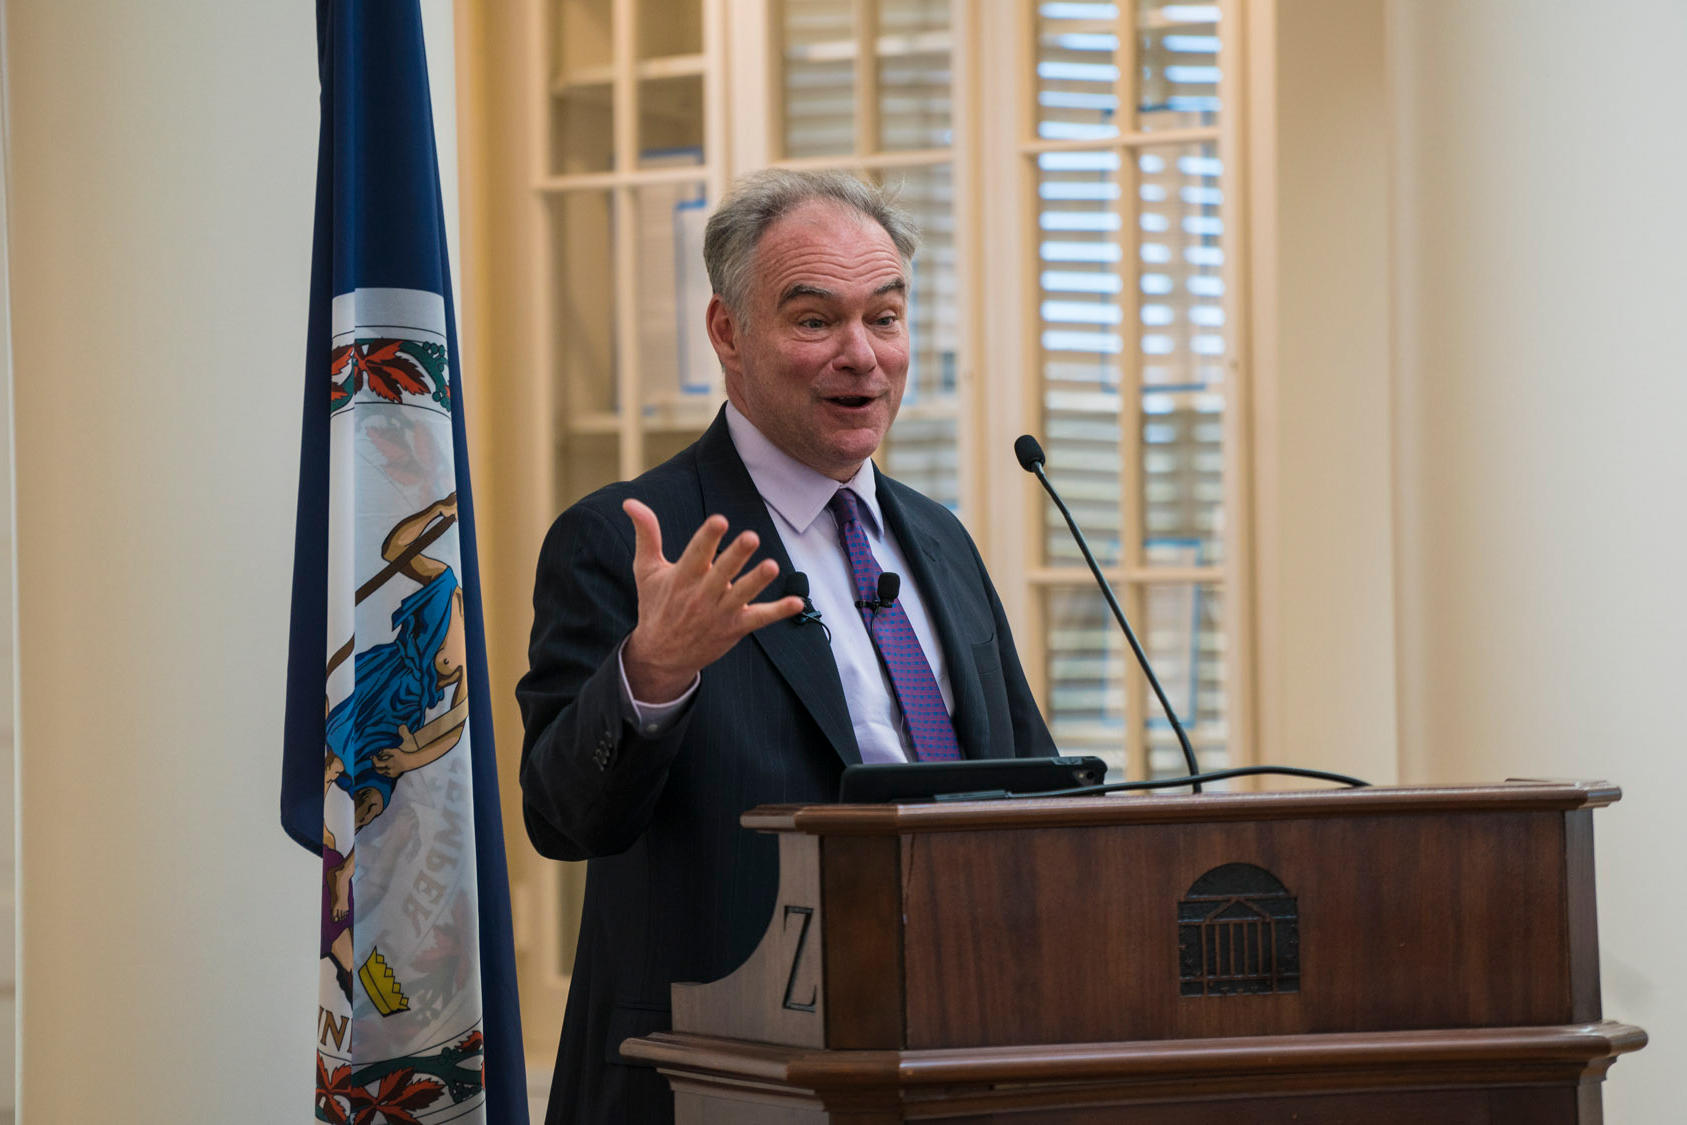 U.S. Sen. Tim Kaine spoke in the Rotunda's Dome Room on Friday afternoon during a Miller Center event. (Photos by Sakib Ahmed, UVA Miller Center)